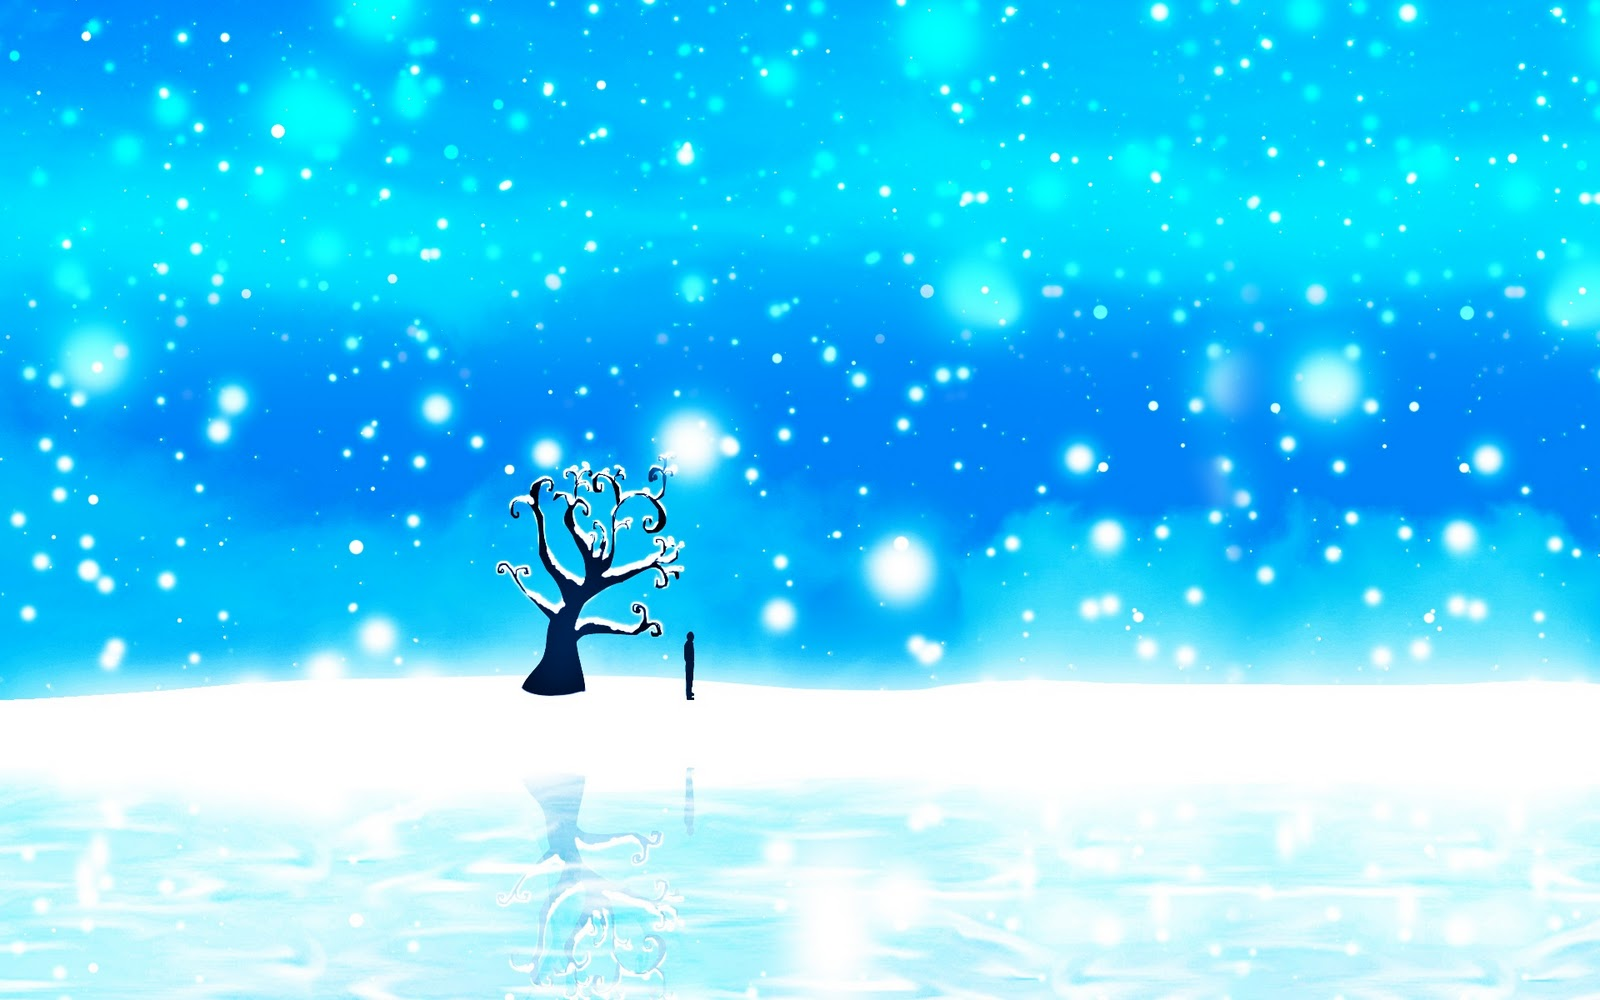 Lonely on a Blue Christmas HD Wallpaper 1080p ~ The Wallpaper Database